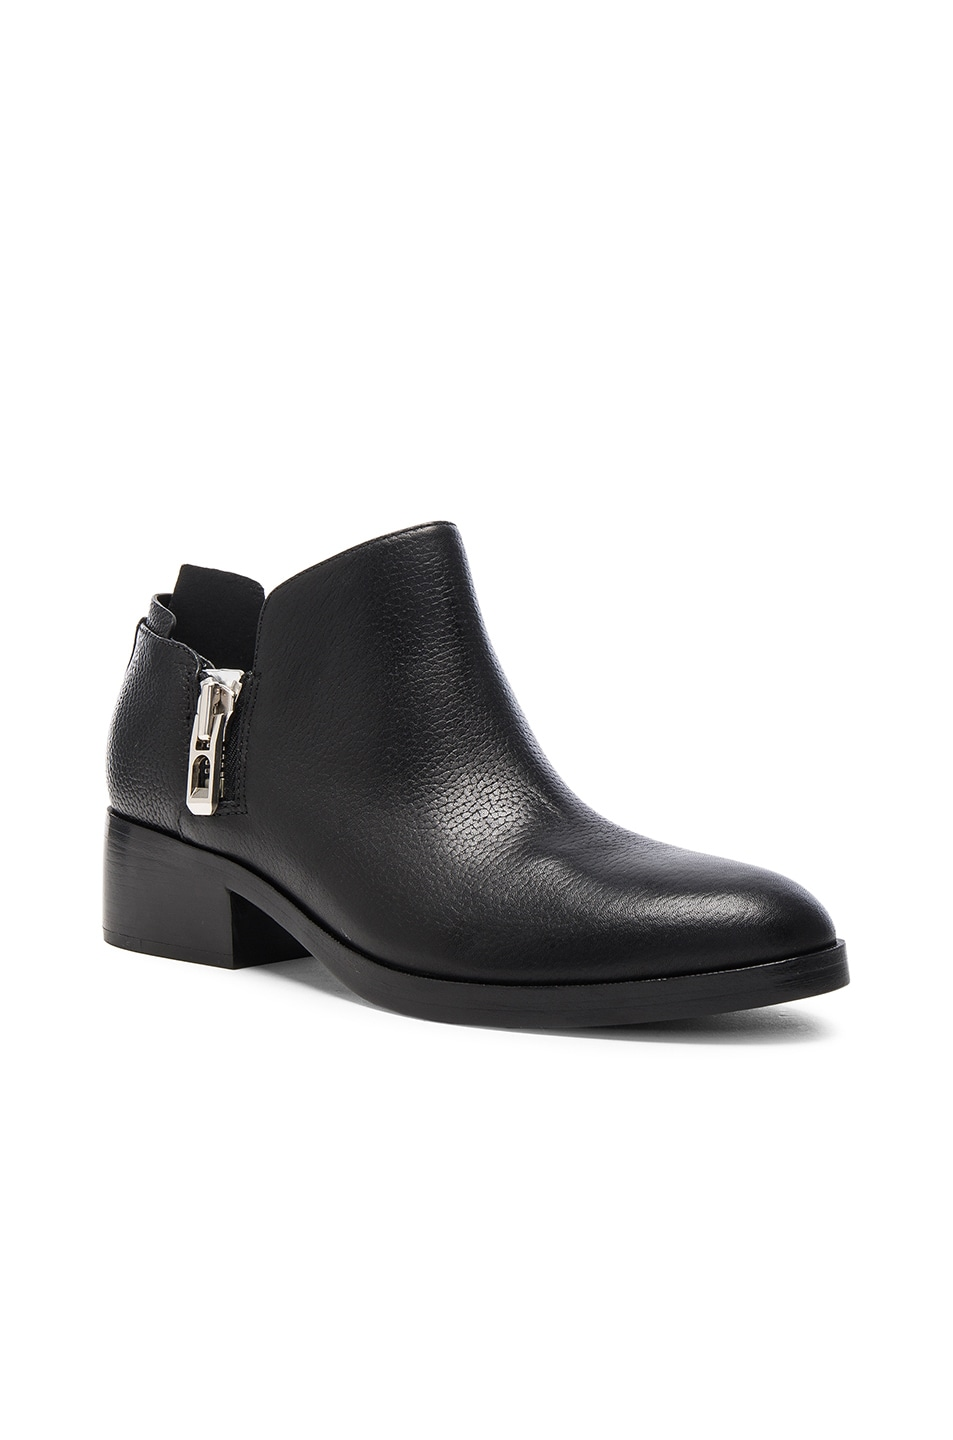 Image 2 of 3.1 phillip lim Leather Alexa Ankle Booties in Black